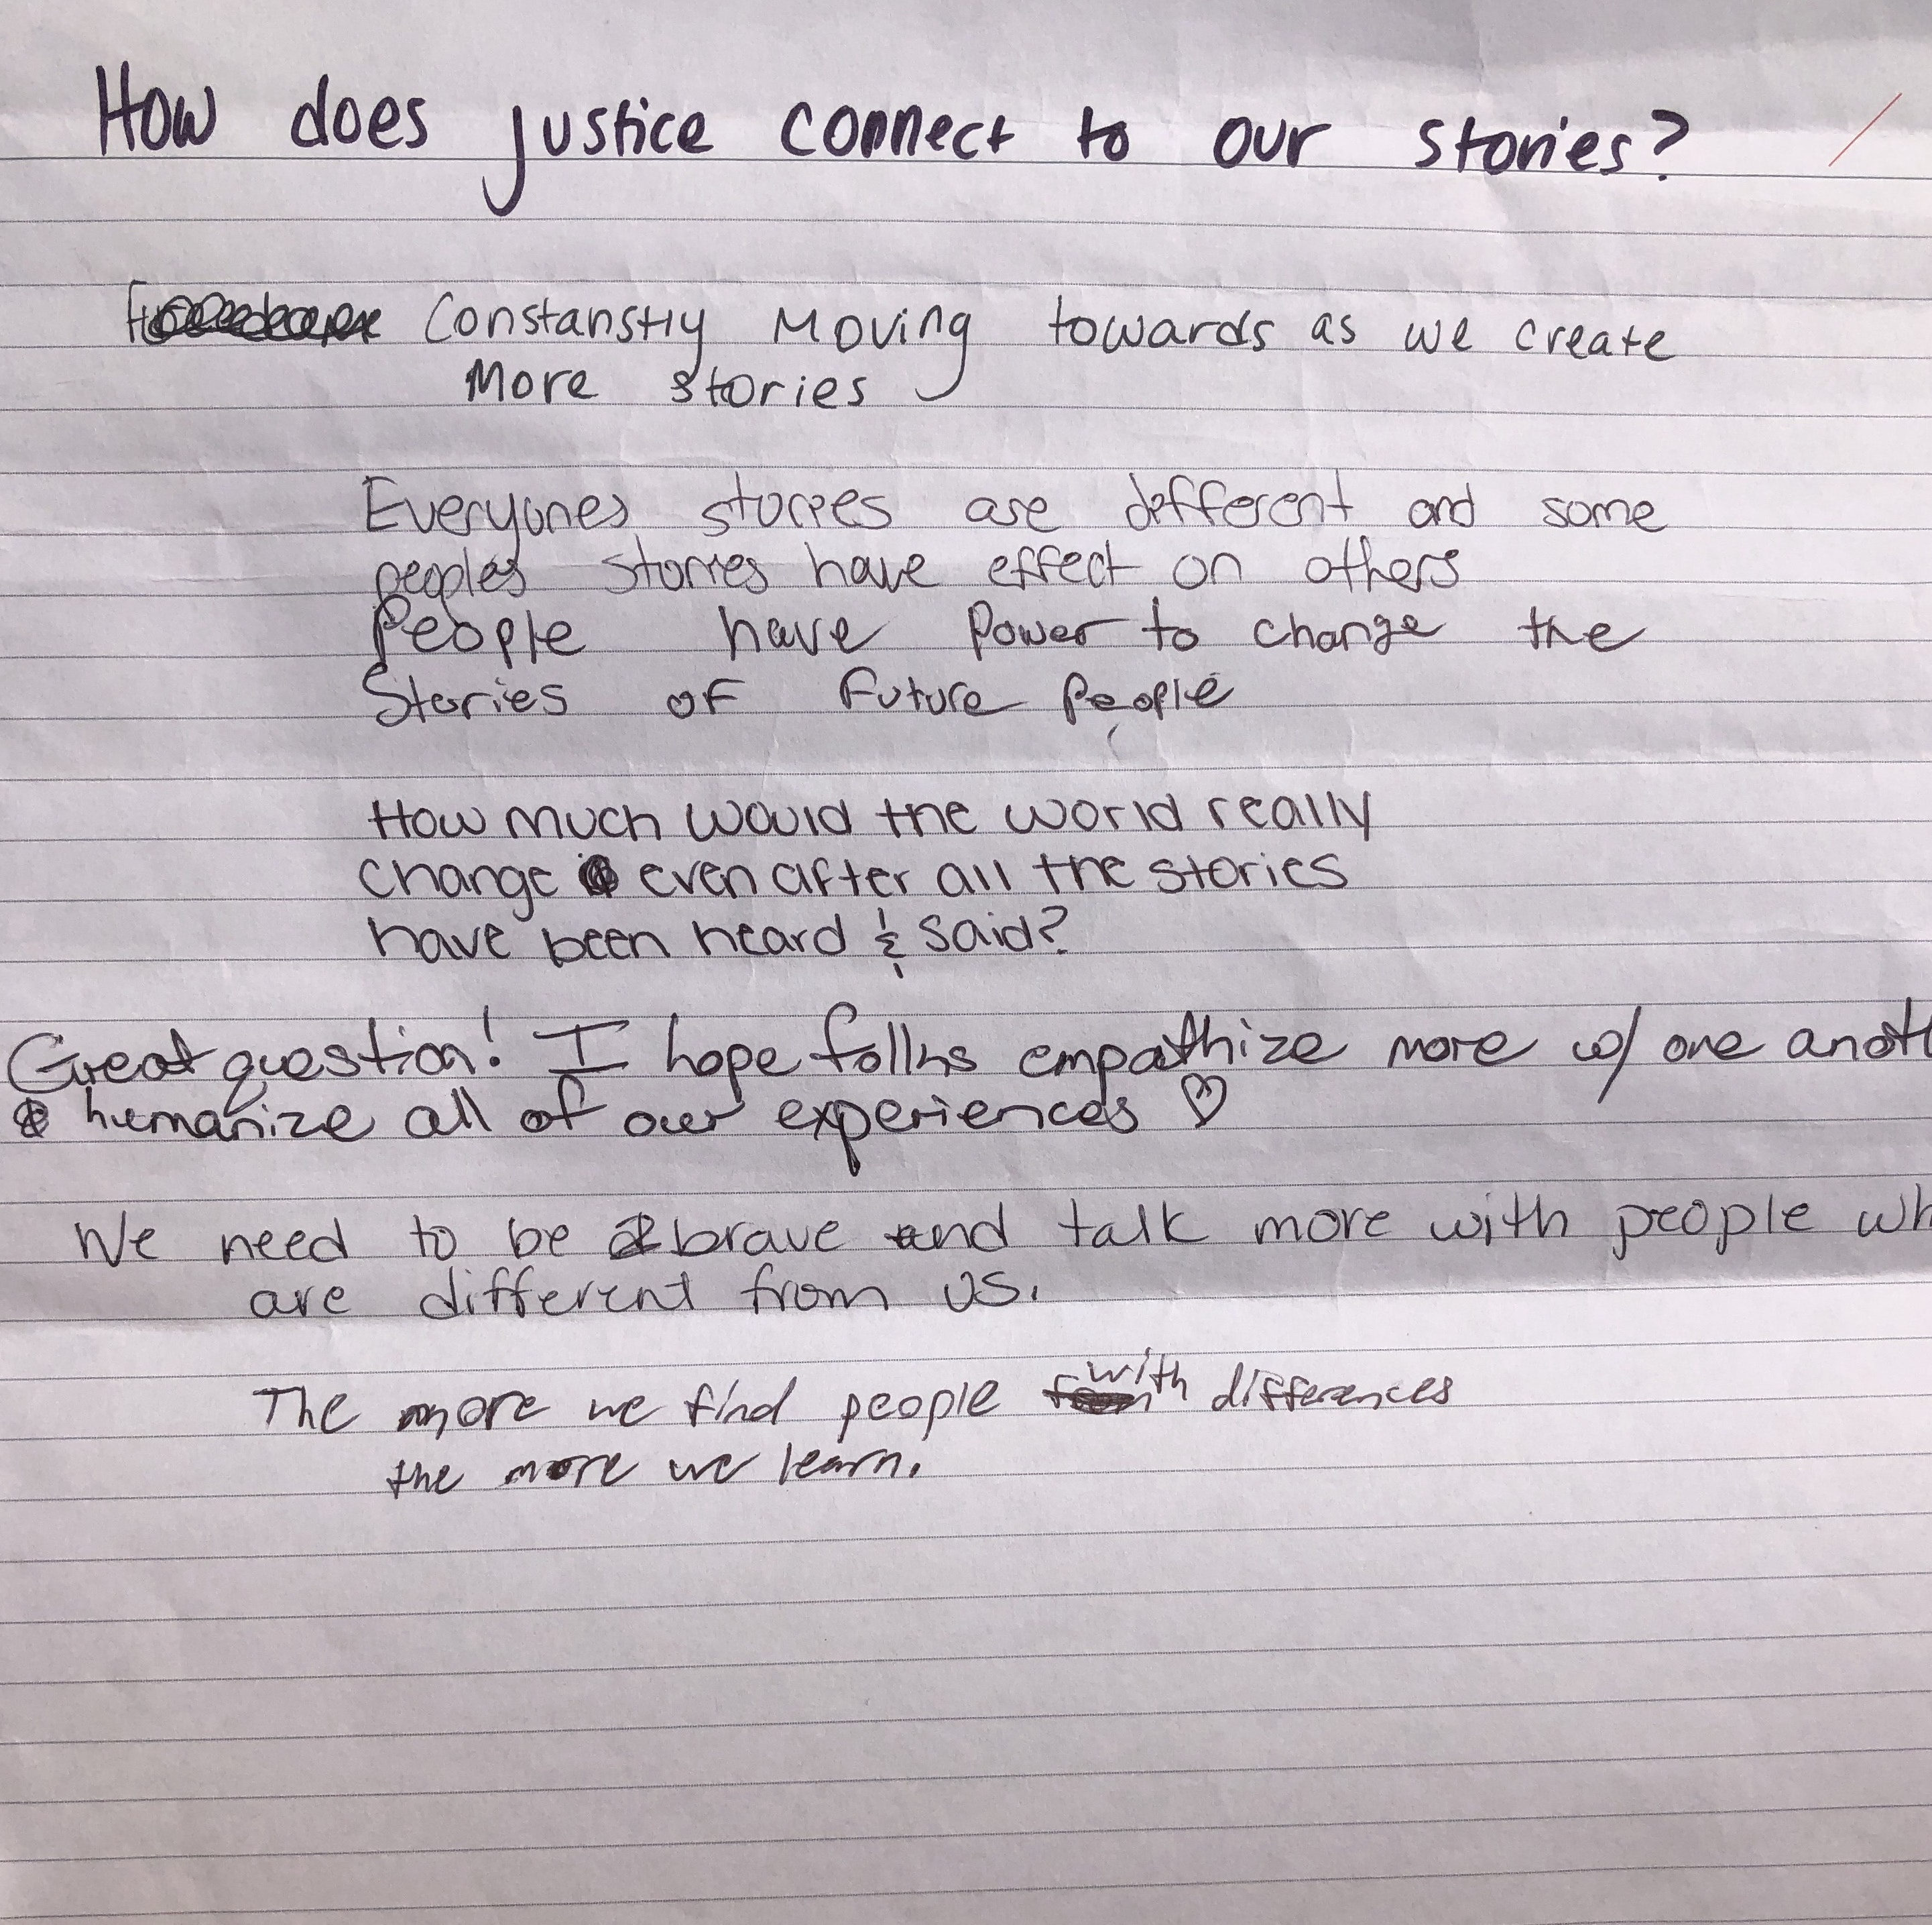 A sheet of lined paper with handwritten text that reads: How does justice connect to our stories? Constantly moving towards as we create more stories. Everyone's stories are different and some people's stories have effect on others. People have power to change the stories of future people. How much would the world really change even after all the stories have been heard and said? Great question! I hope folk empathize more w/ one another and humanize all of our experiences. (heart shape) We need to be brave and talk more with people who are different from us. The more we find people with difference the more we learn.